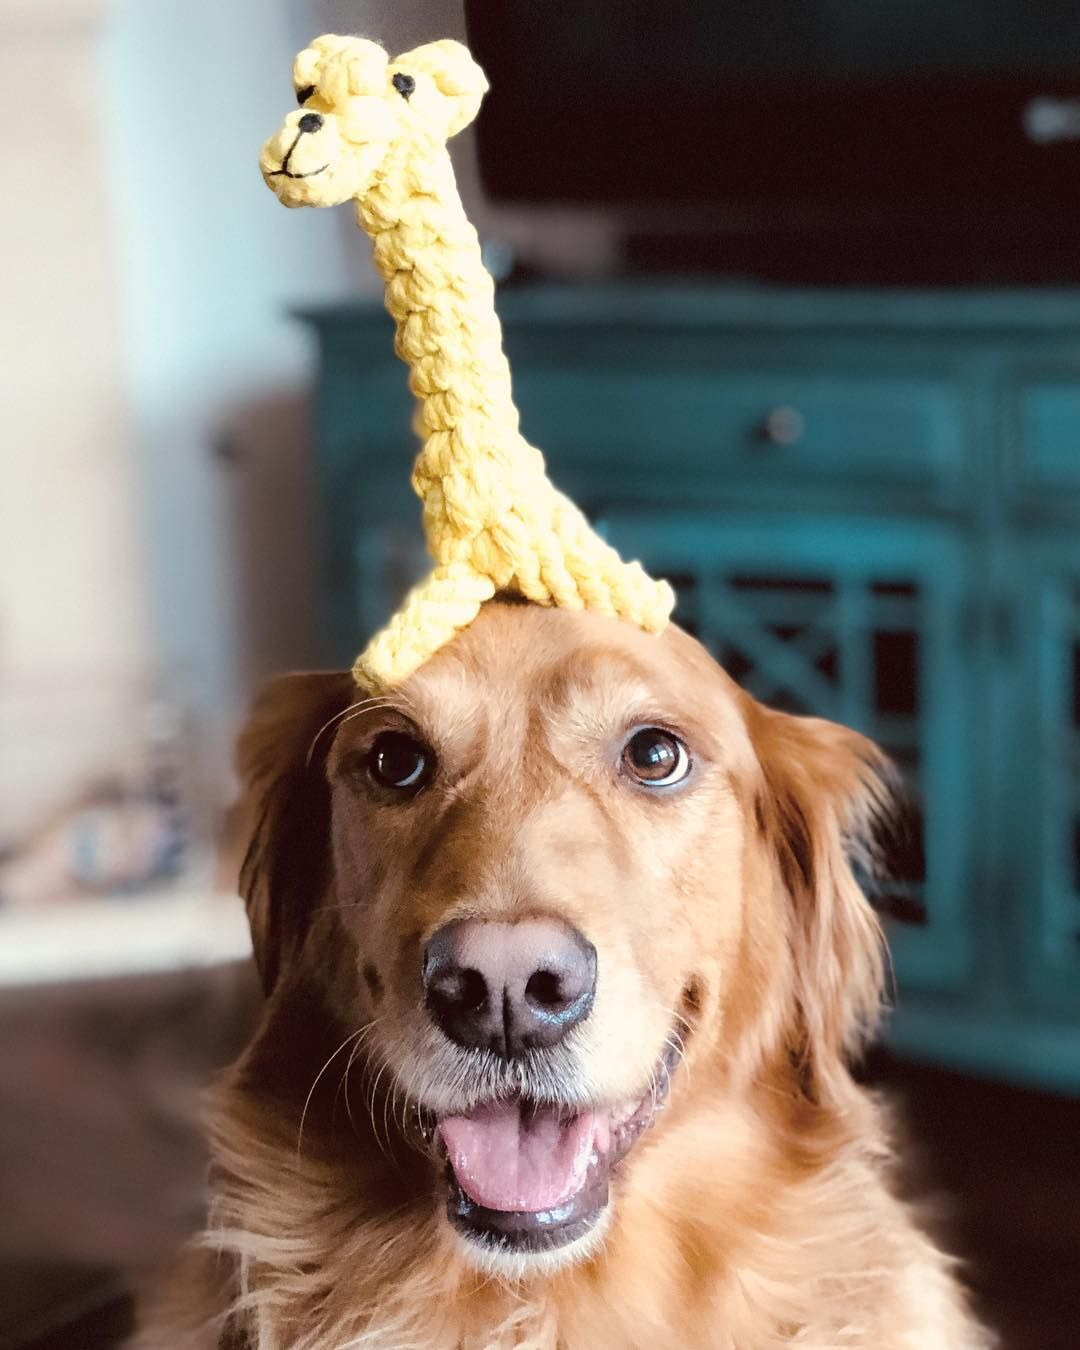 I Love My Goldenretriever Golden Retriever Oldmanbella Goldensofinstagram Cutestgoldens Dallas Petfriendly Welovego Golden Retriever Dog Modeling Petco